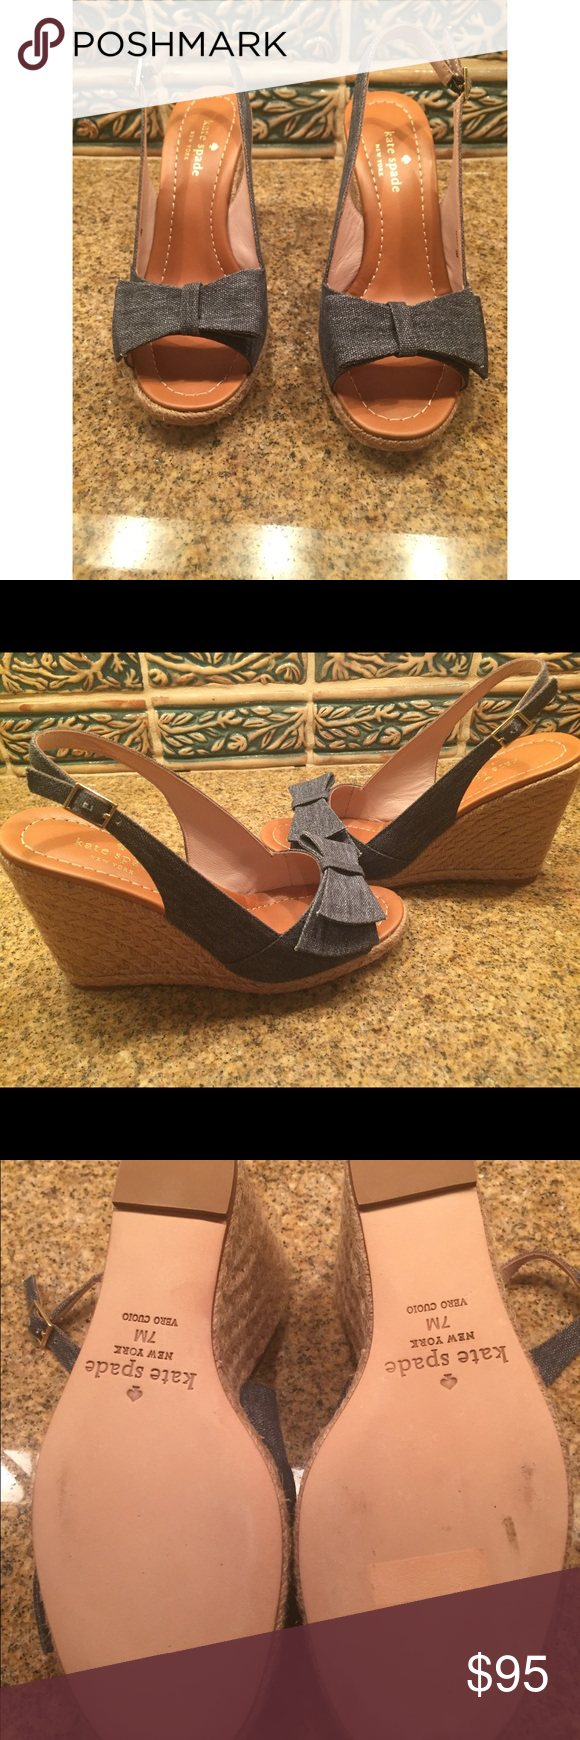 "Kate Spade ""Boardwalk"" Wedges Kate Spade Boardwalk Wedges. The material is denim canvas with natural rope covering the heel. 3.5"" heel and a adjustable ankle strap. The right shoe was the display shoe that is why the sole is slightly scuffed. kate spade Shoes Wedges"